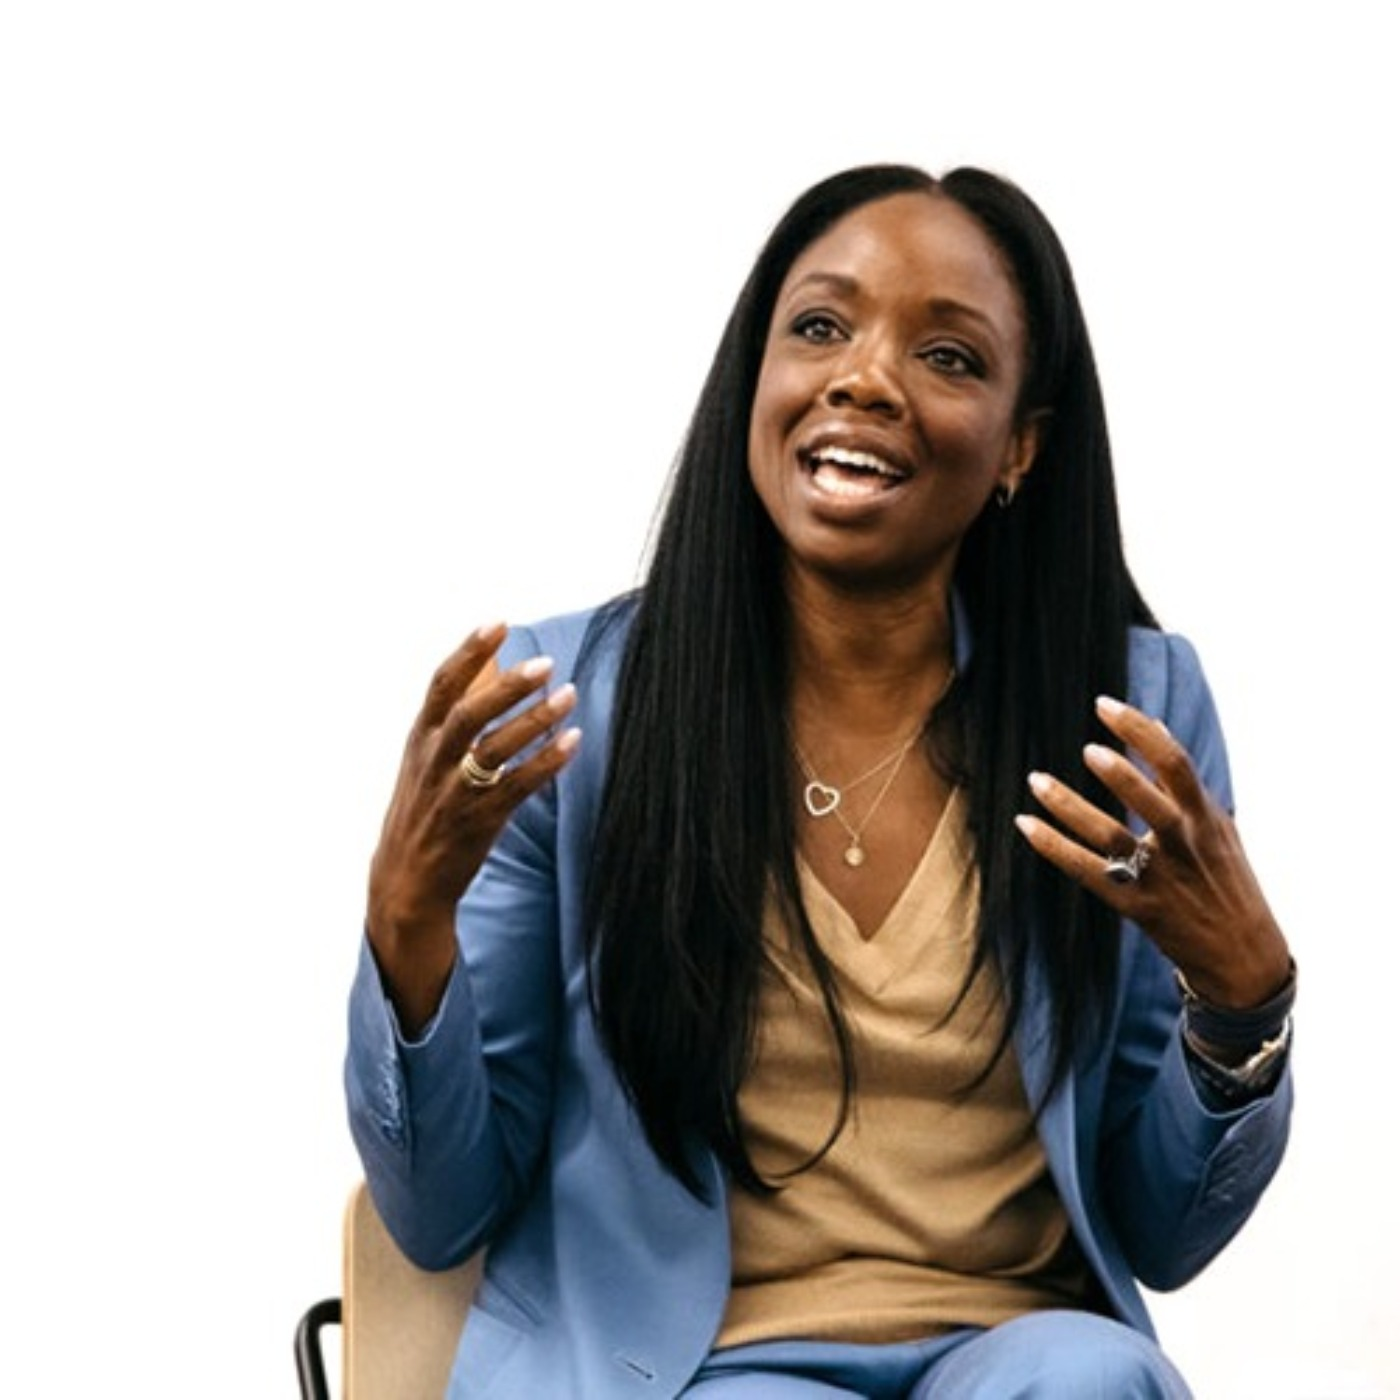 California Surgeon General Nadine Burke Harris on the health impacts of childhood stress